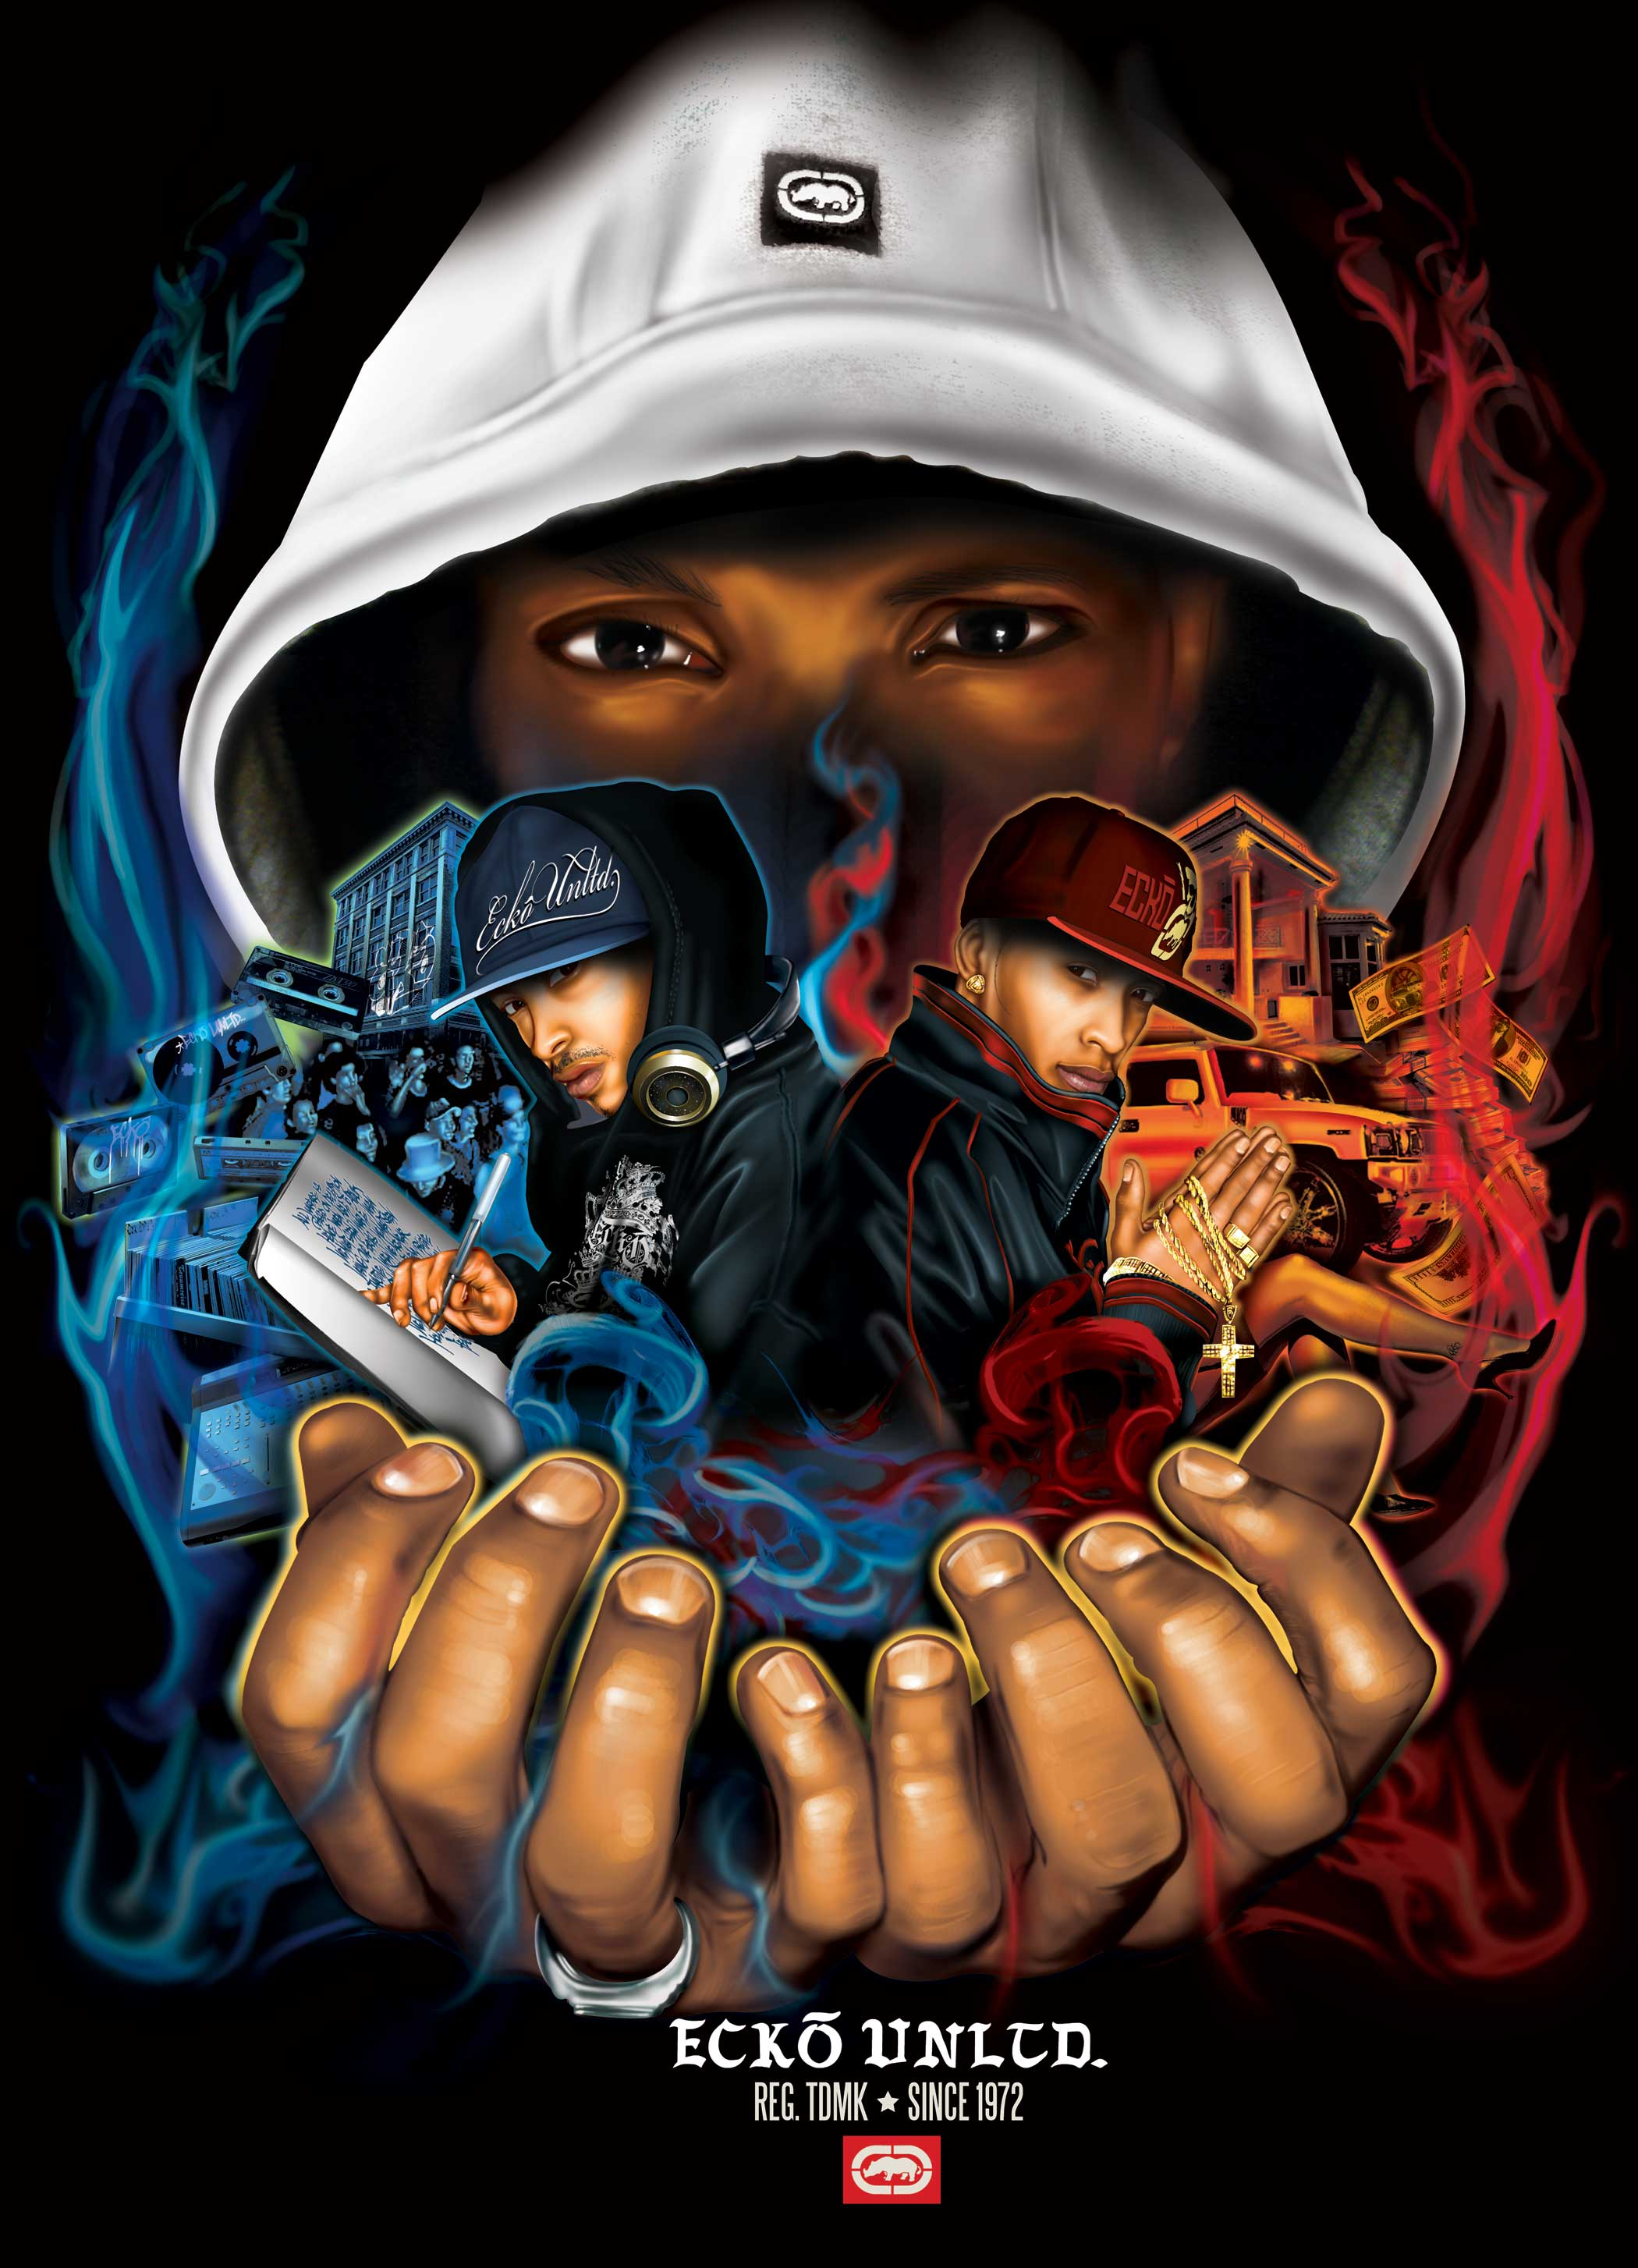 graffitis de hip hop - poster